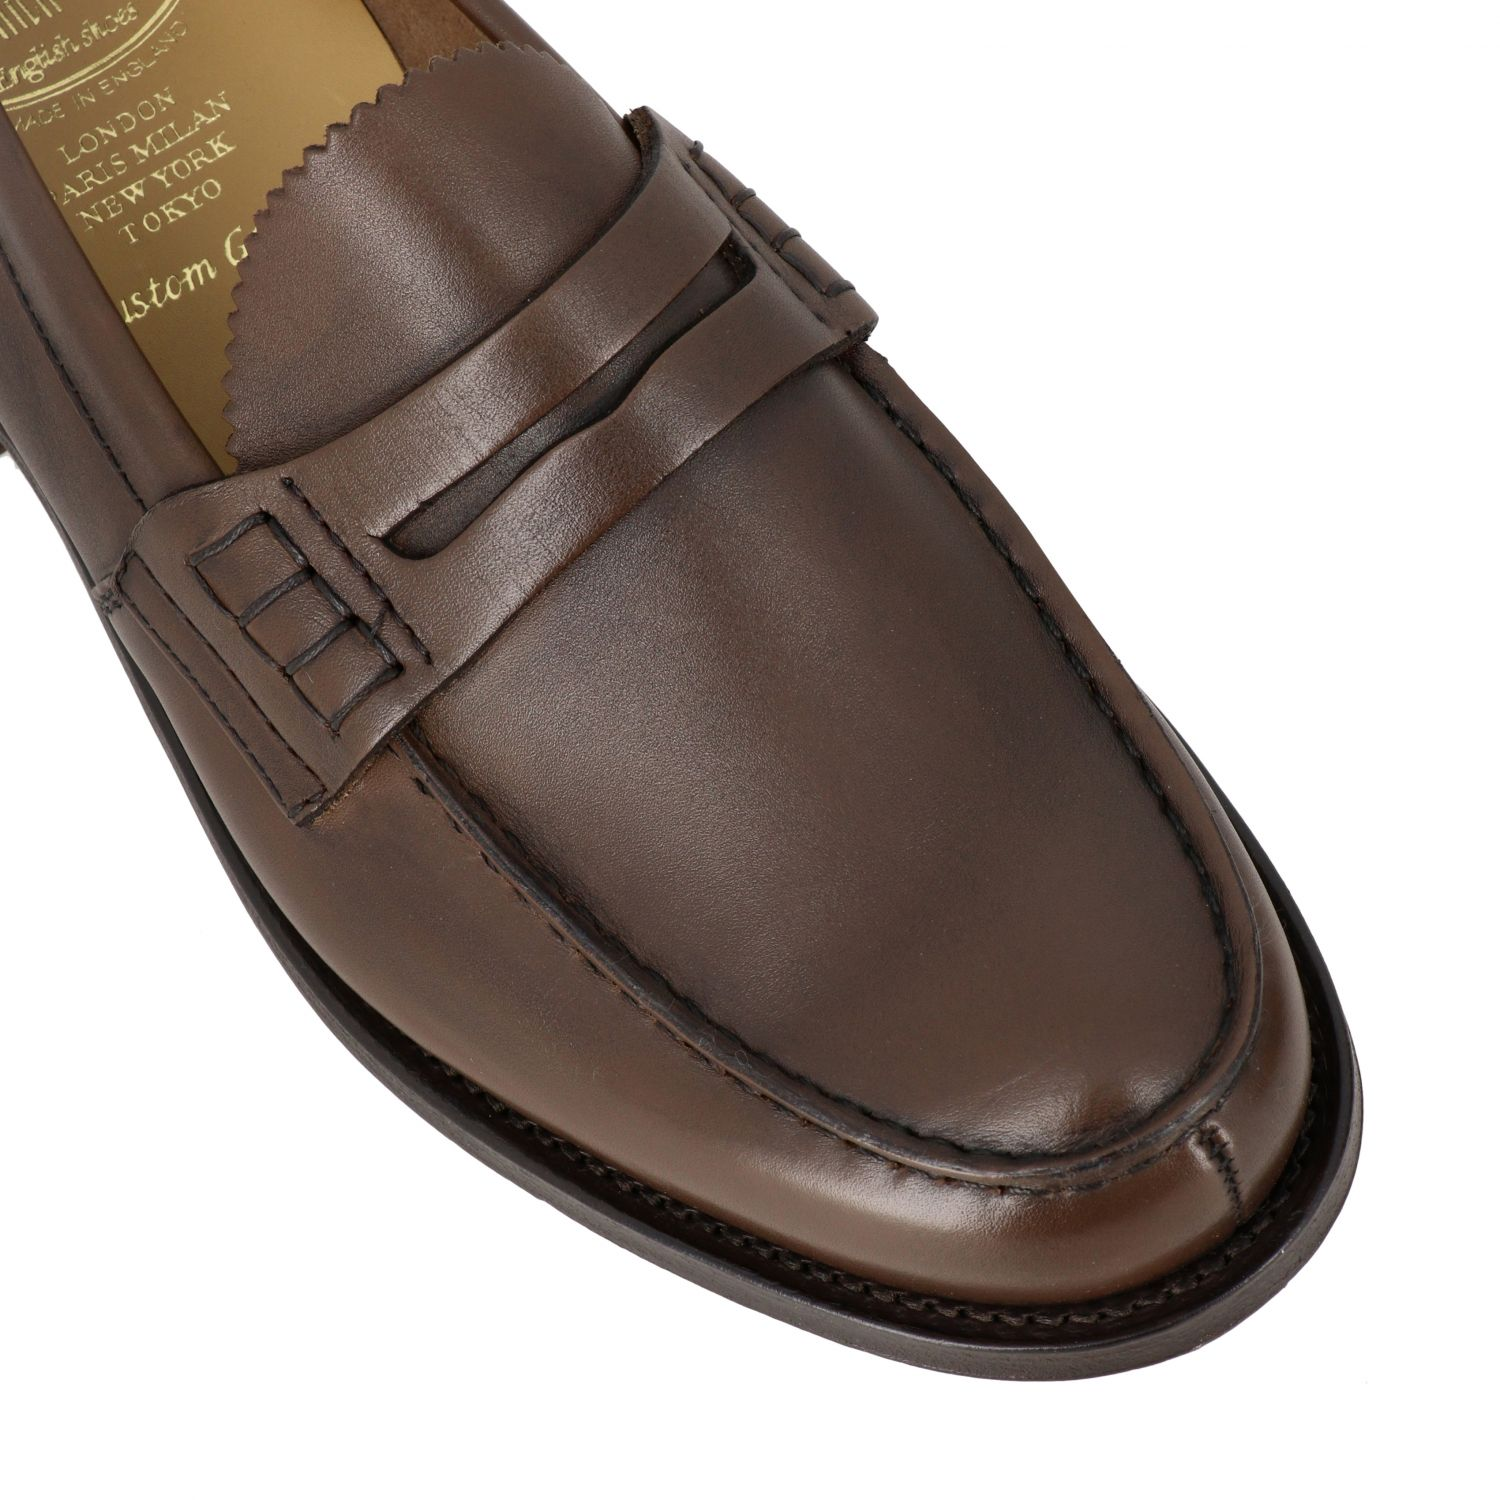 Loafers Church's: Pembrey Church's leather loafer honey 4